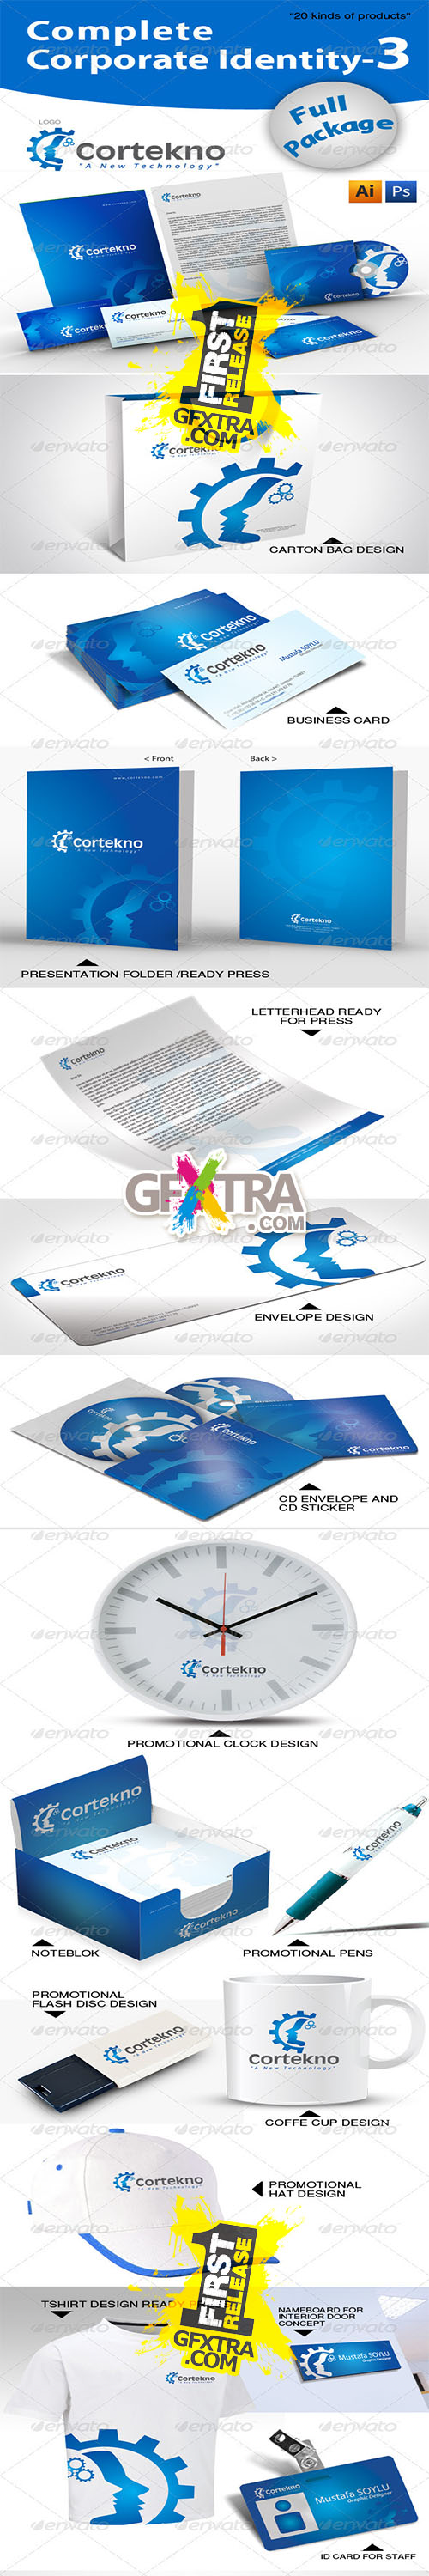 GraphicRiver - Complete Corporate Identity + 20 Free Mockup